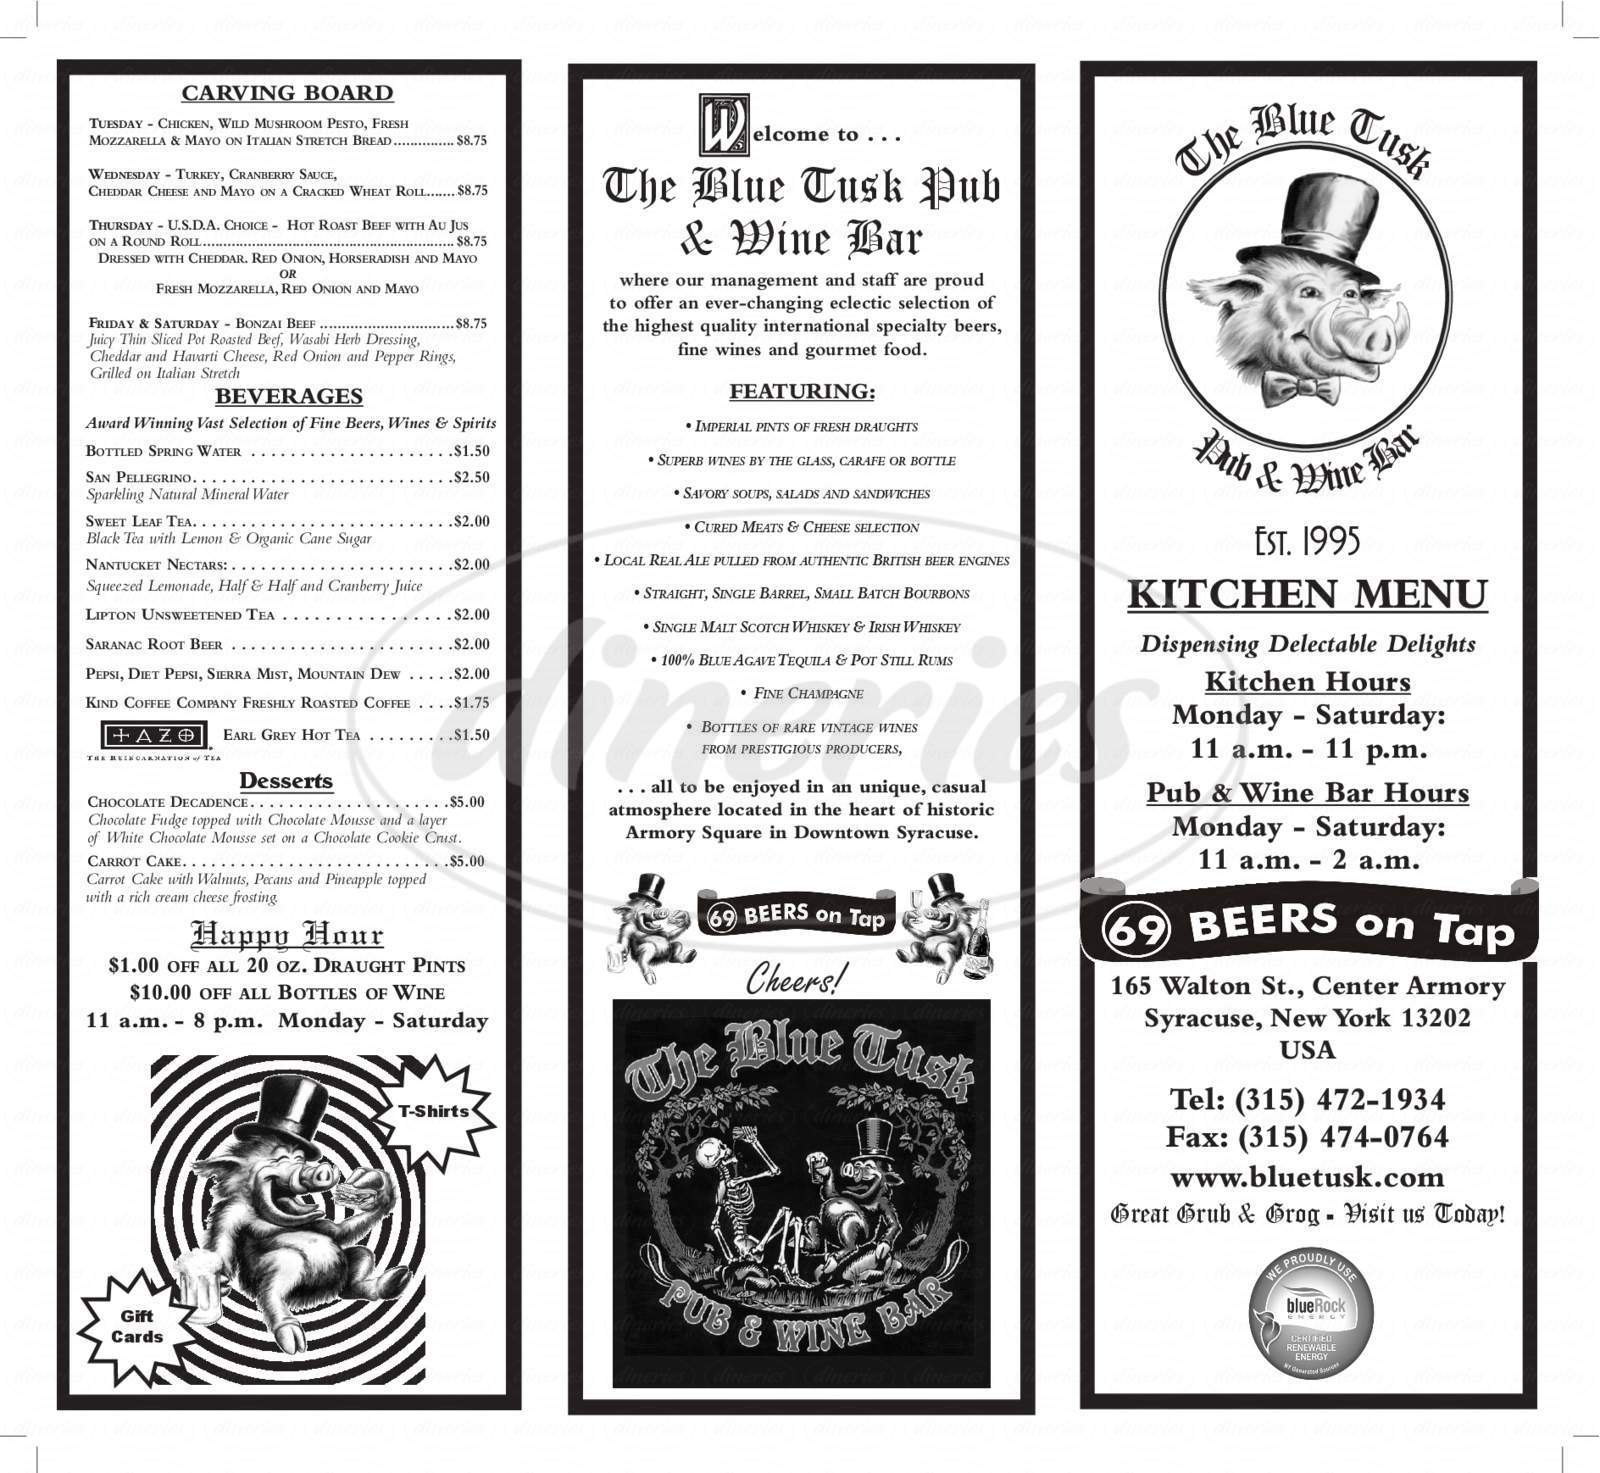 menu for The Blue Tusk